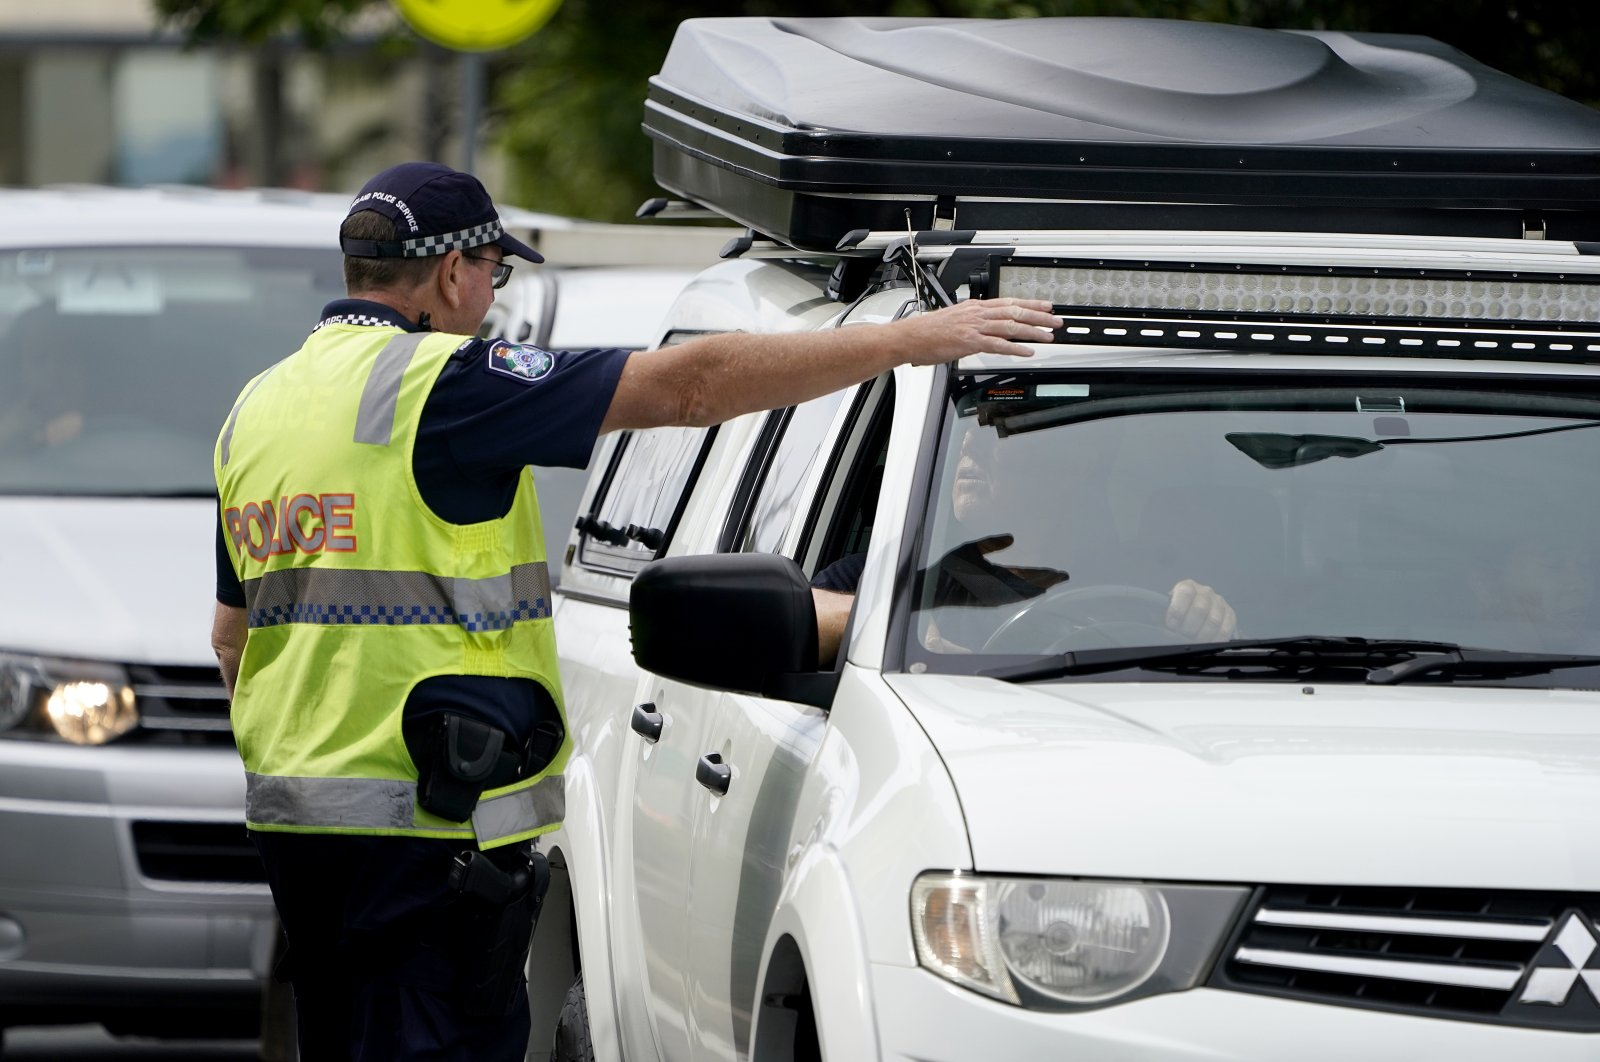 A Queensland police officer gestures for a motorist to pull over at a checkpoint at Coolangatta on the Queensland-New South Wales border, May 22, 2020. (Reuters Photo)